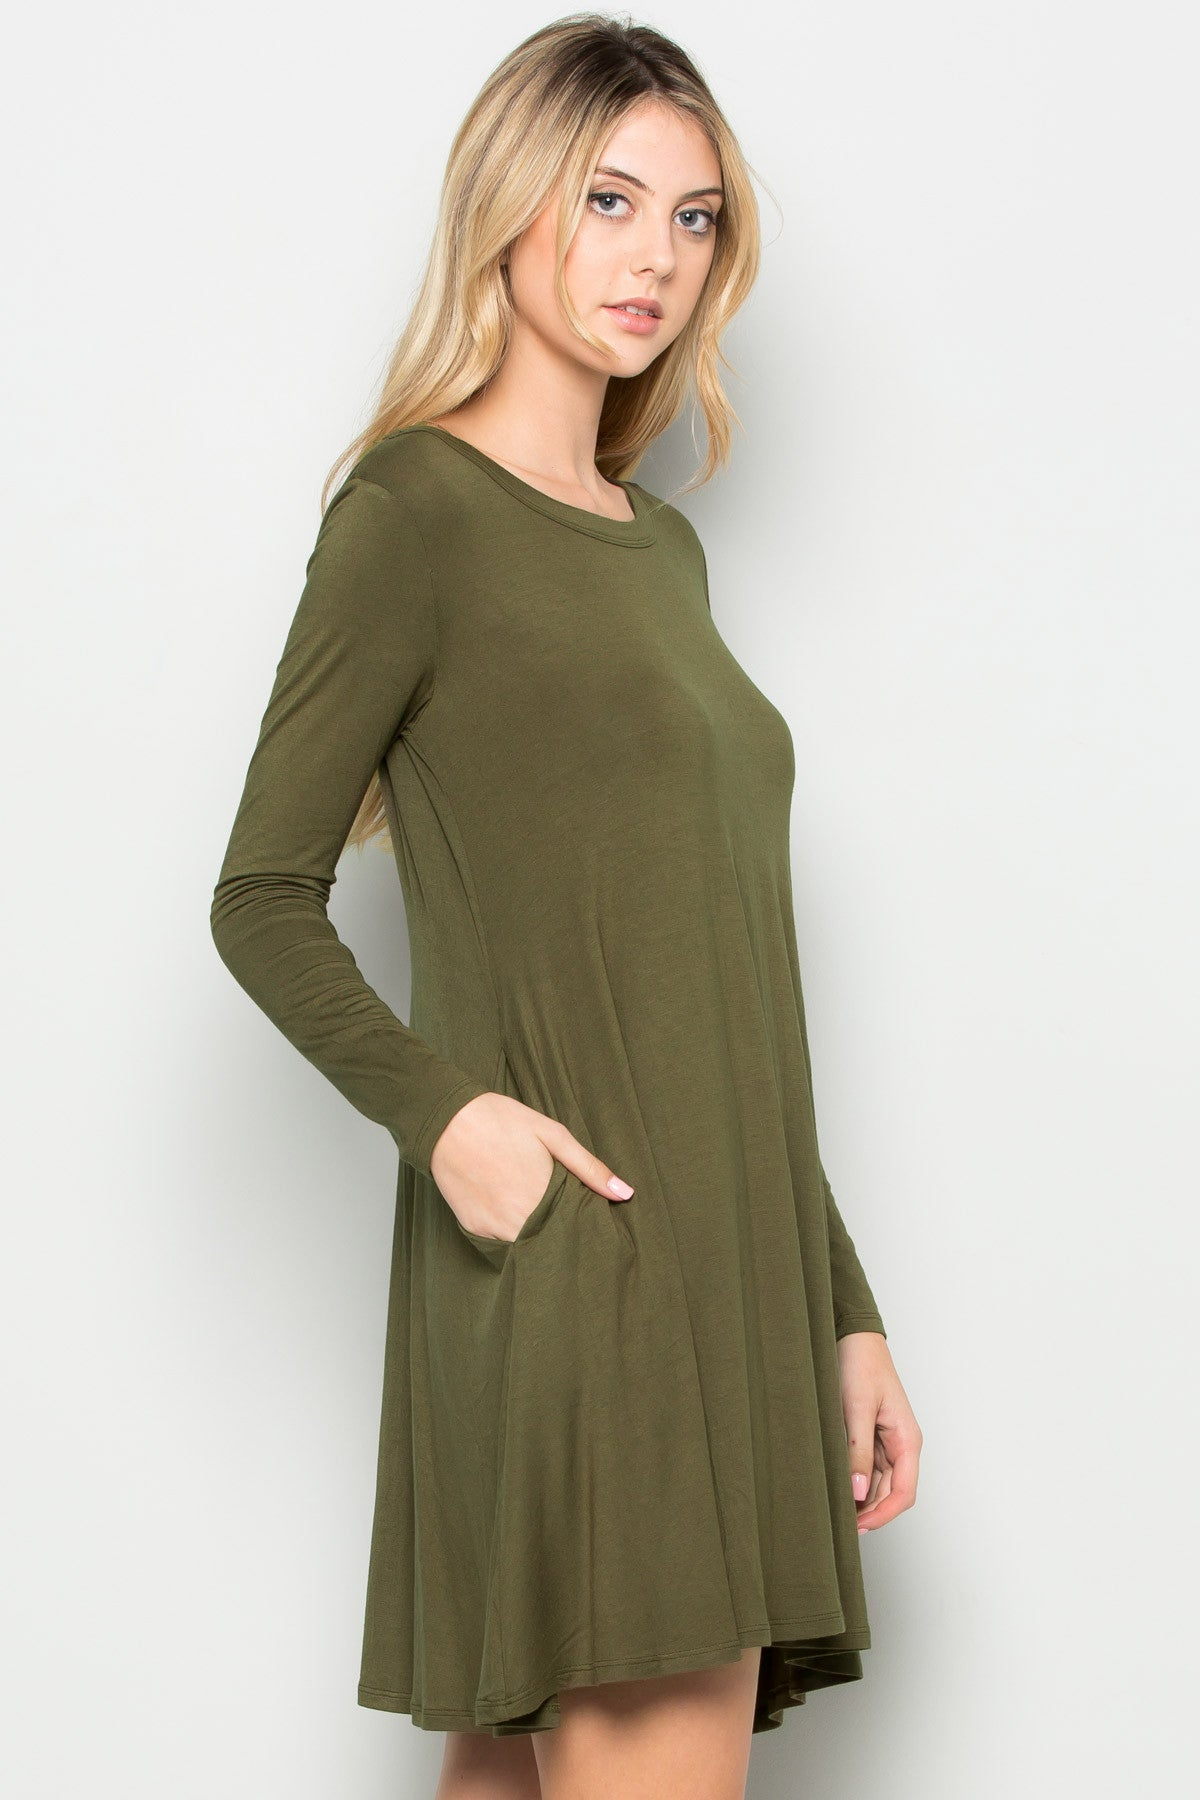 Military Green Long Sleeve Open Back Swing Dress - Dresses - My Yuccie - 9